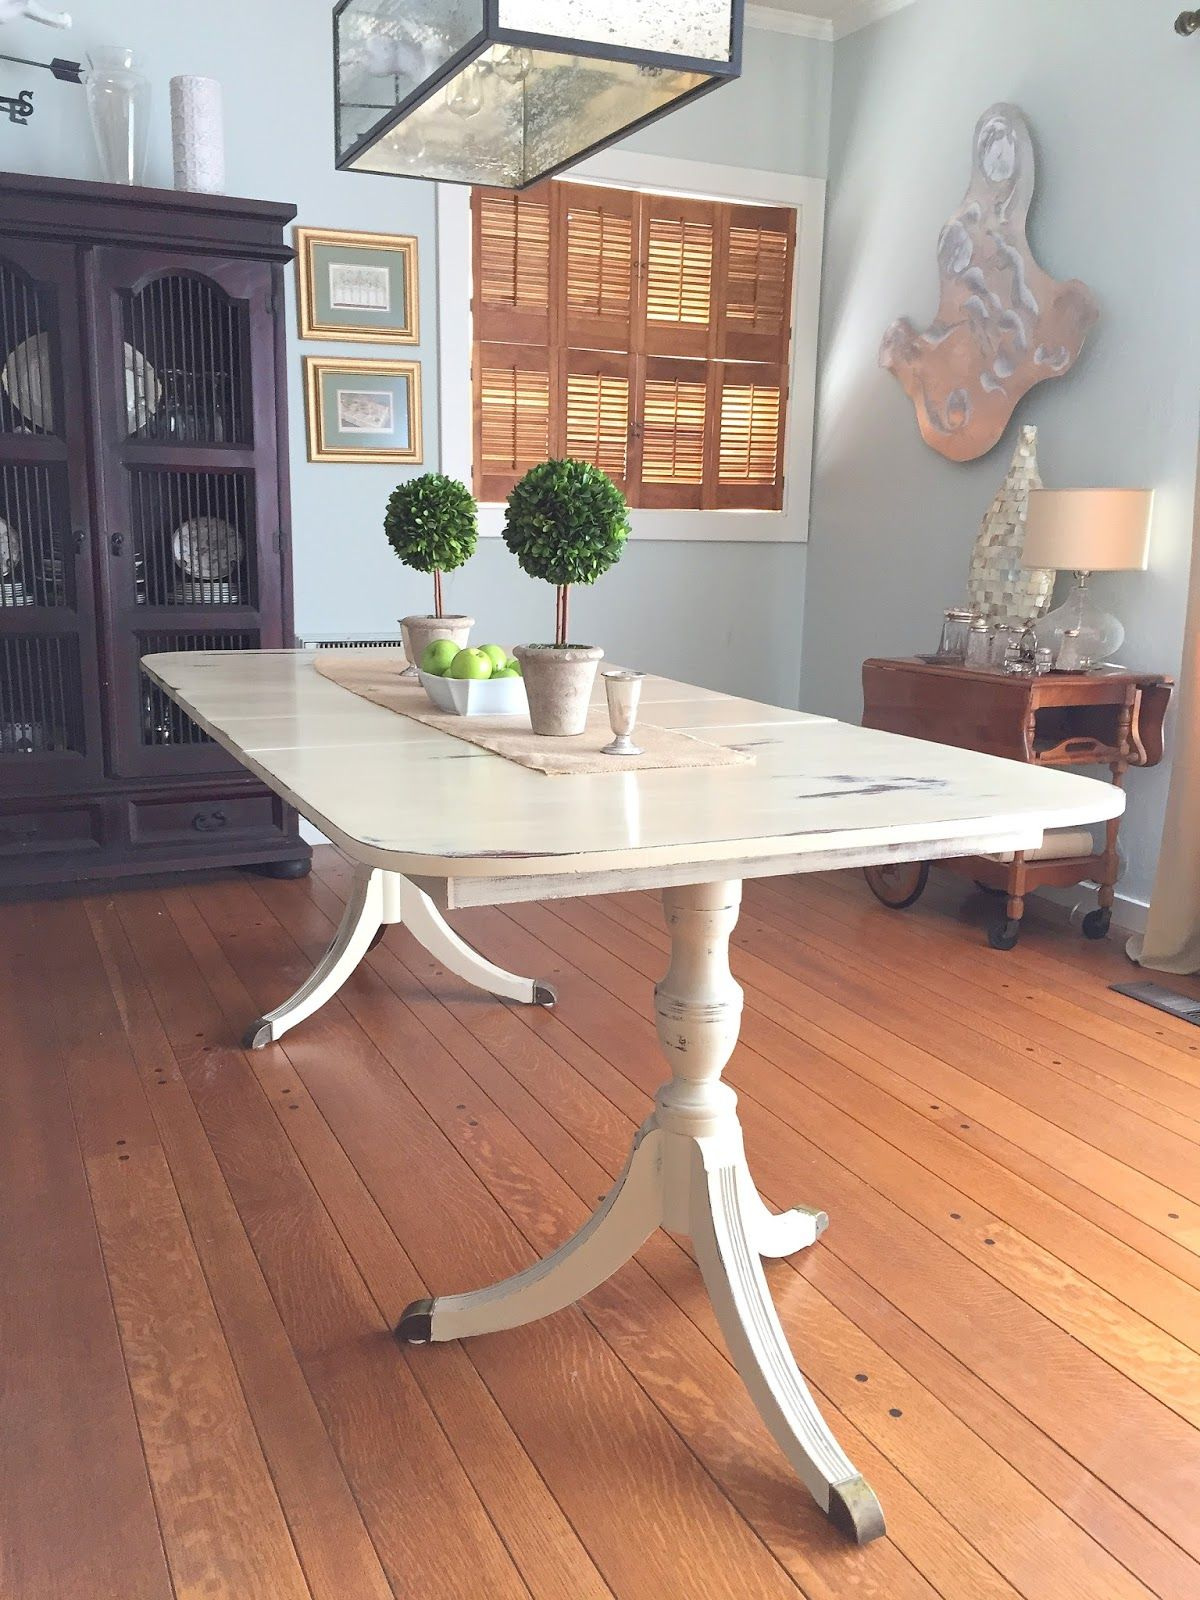 Duncan Phyfe Dining Table Painted With Annie Sloan Chalk